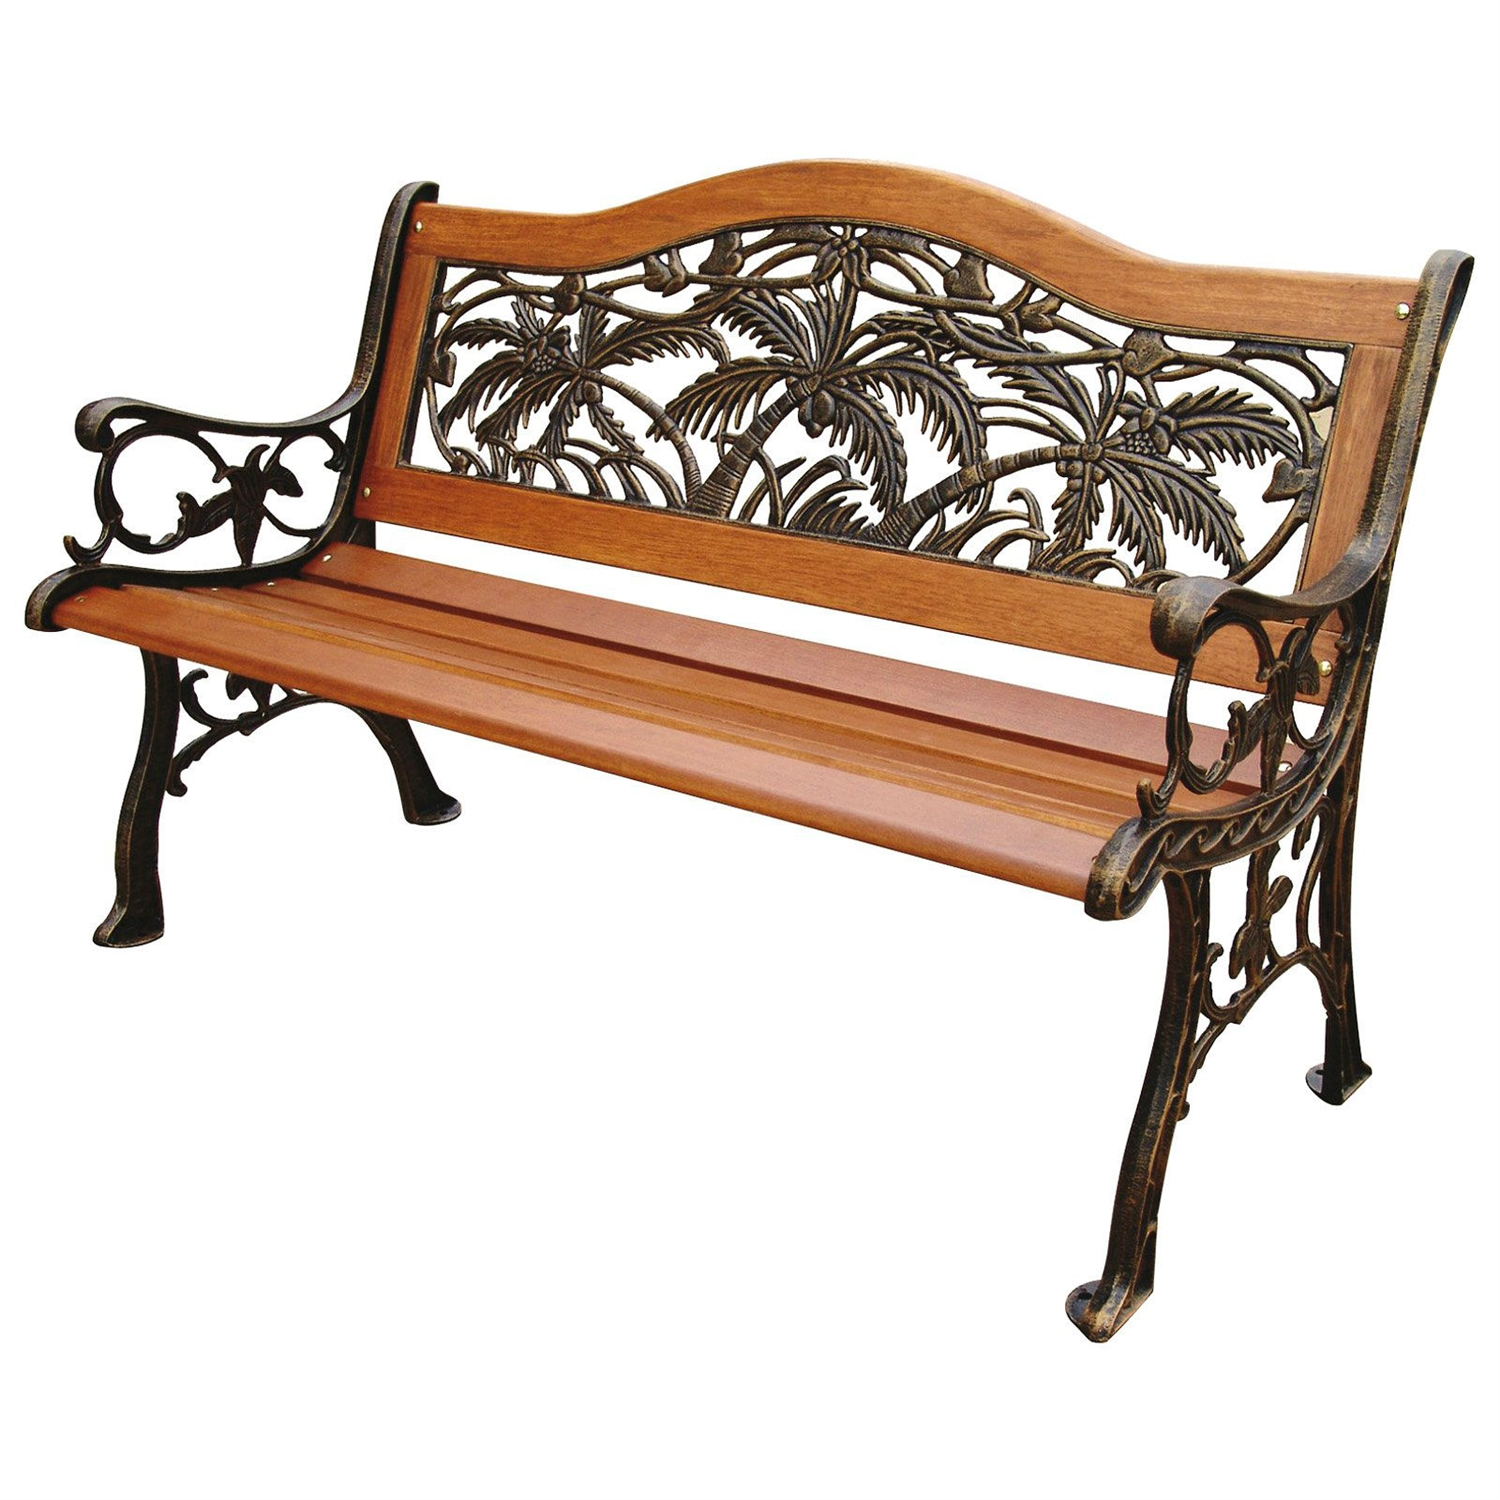 Iron Furniture Design